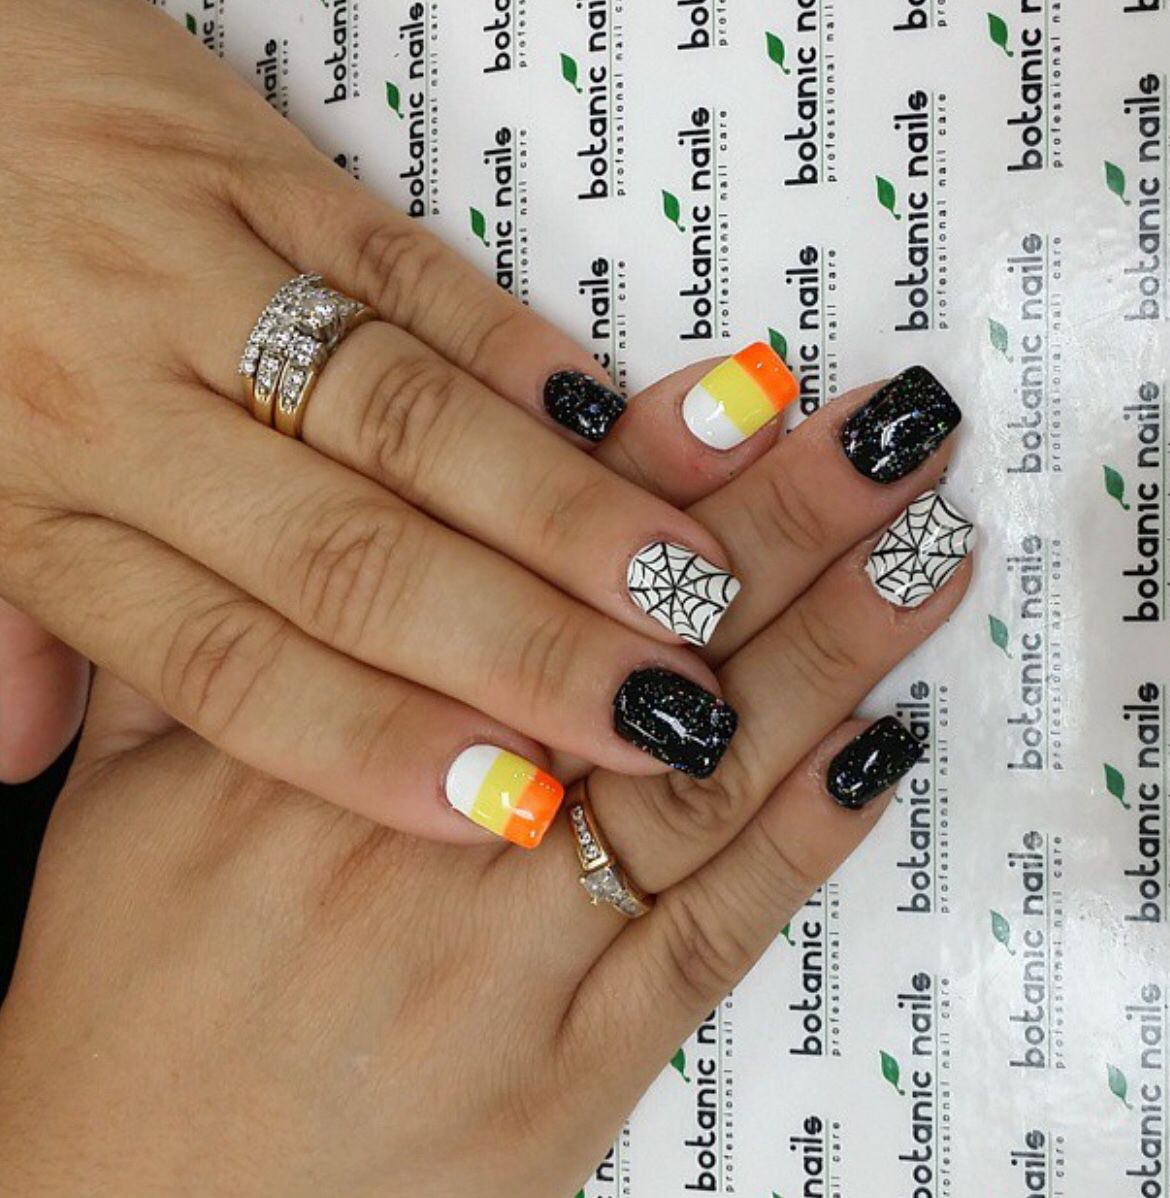 Candy corn nails (With images) | Cute halloween nails ...